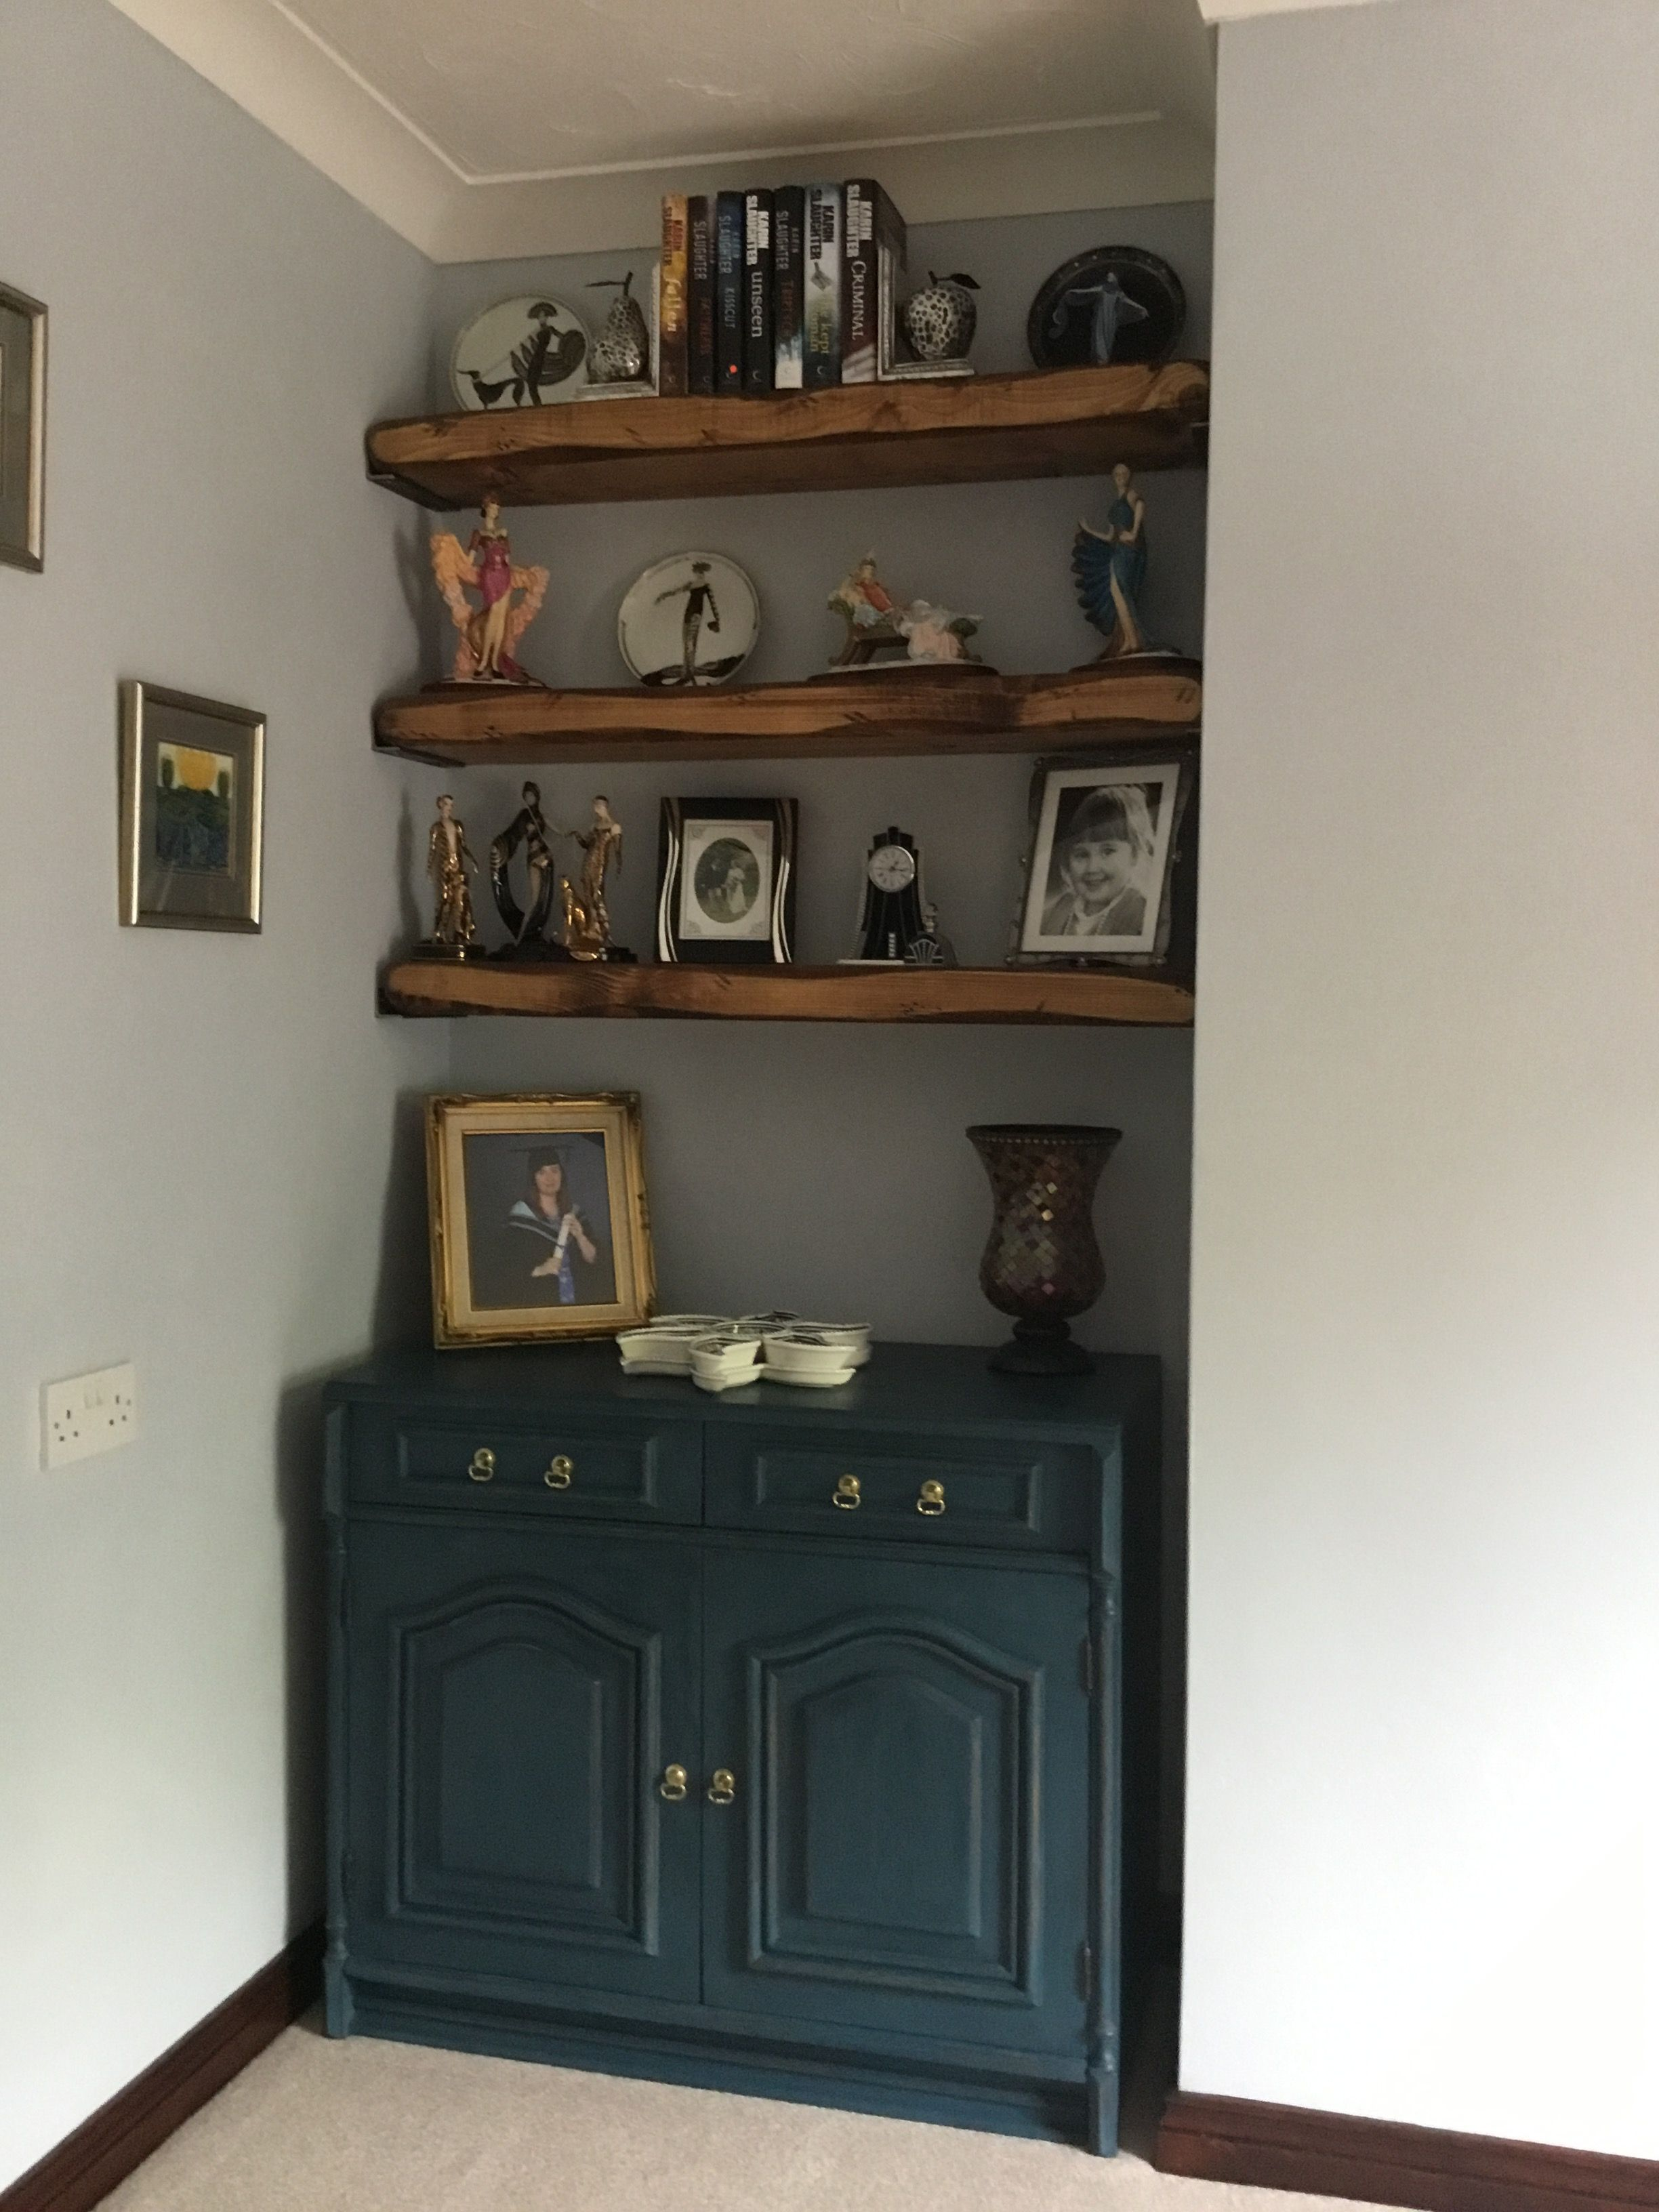 Victorian Terraced House Alcoves We Were Quoted 1700 To Have Built In Cupbo Alcove Ideas Living Room Built In Shelves Living Room Victorian Living Room Decor